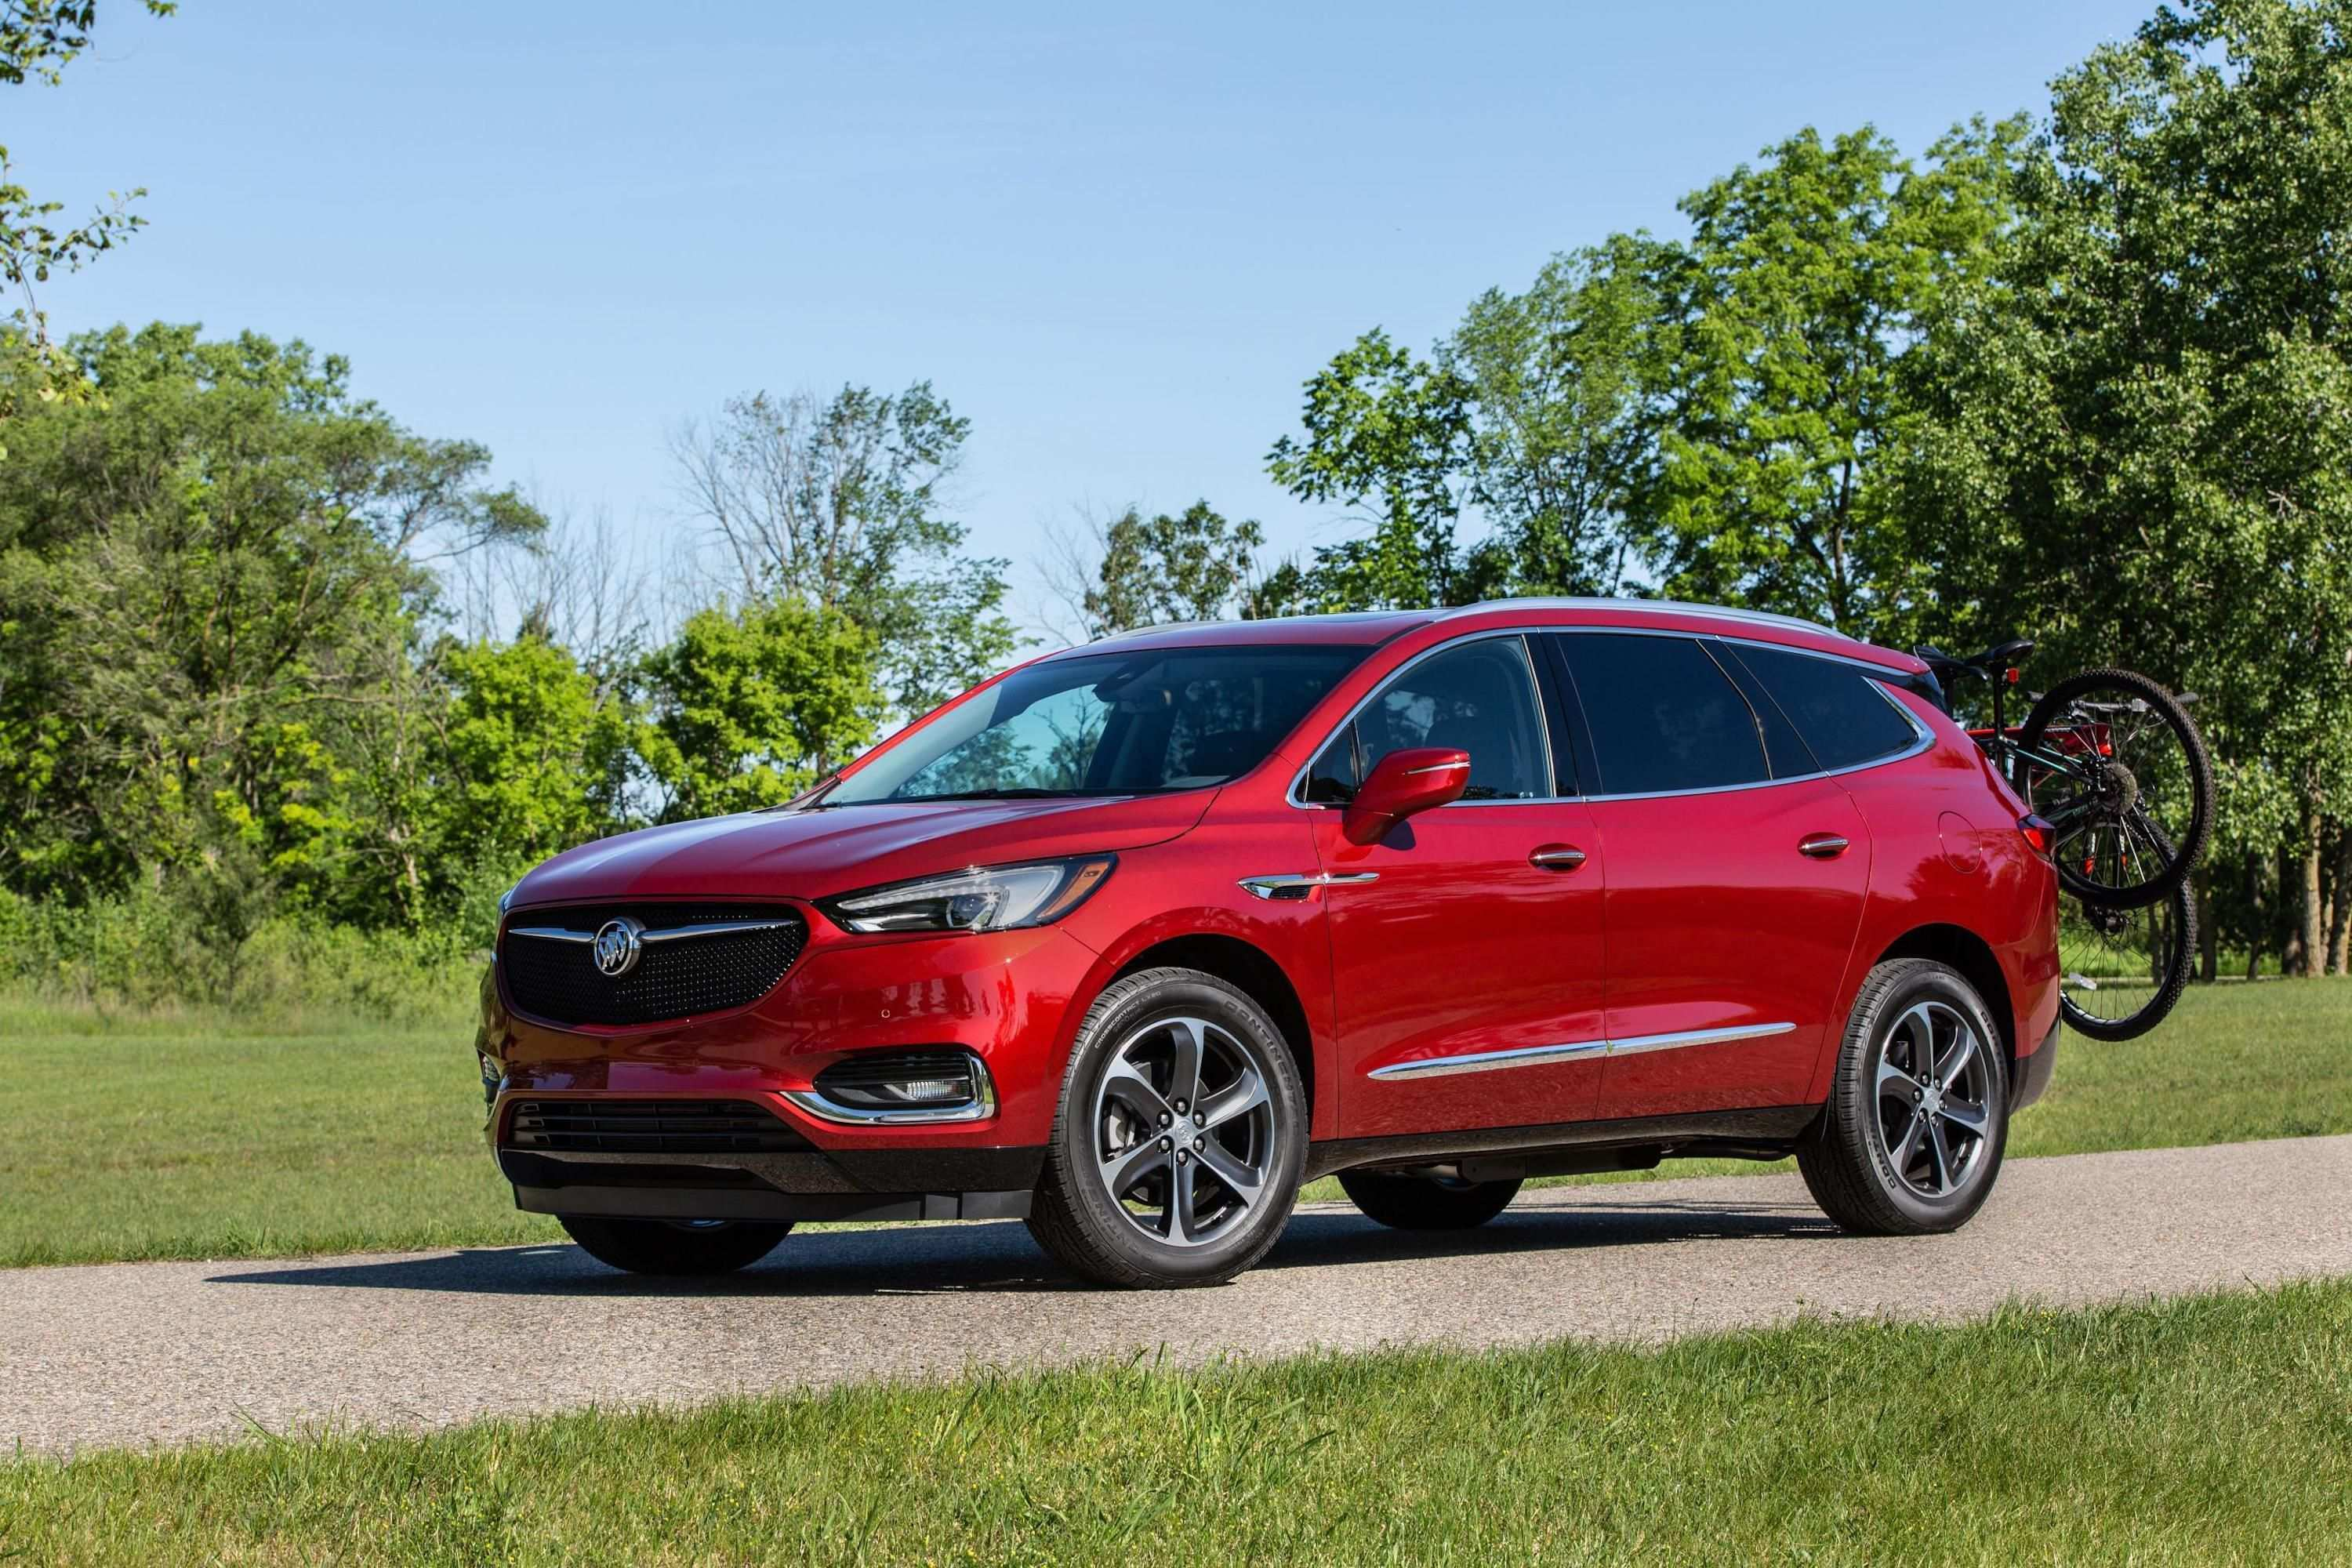 61 All New 2020 Buick Vehicles Photos